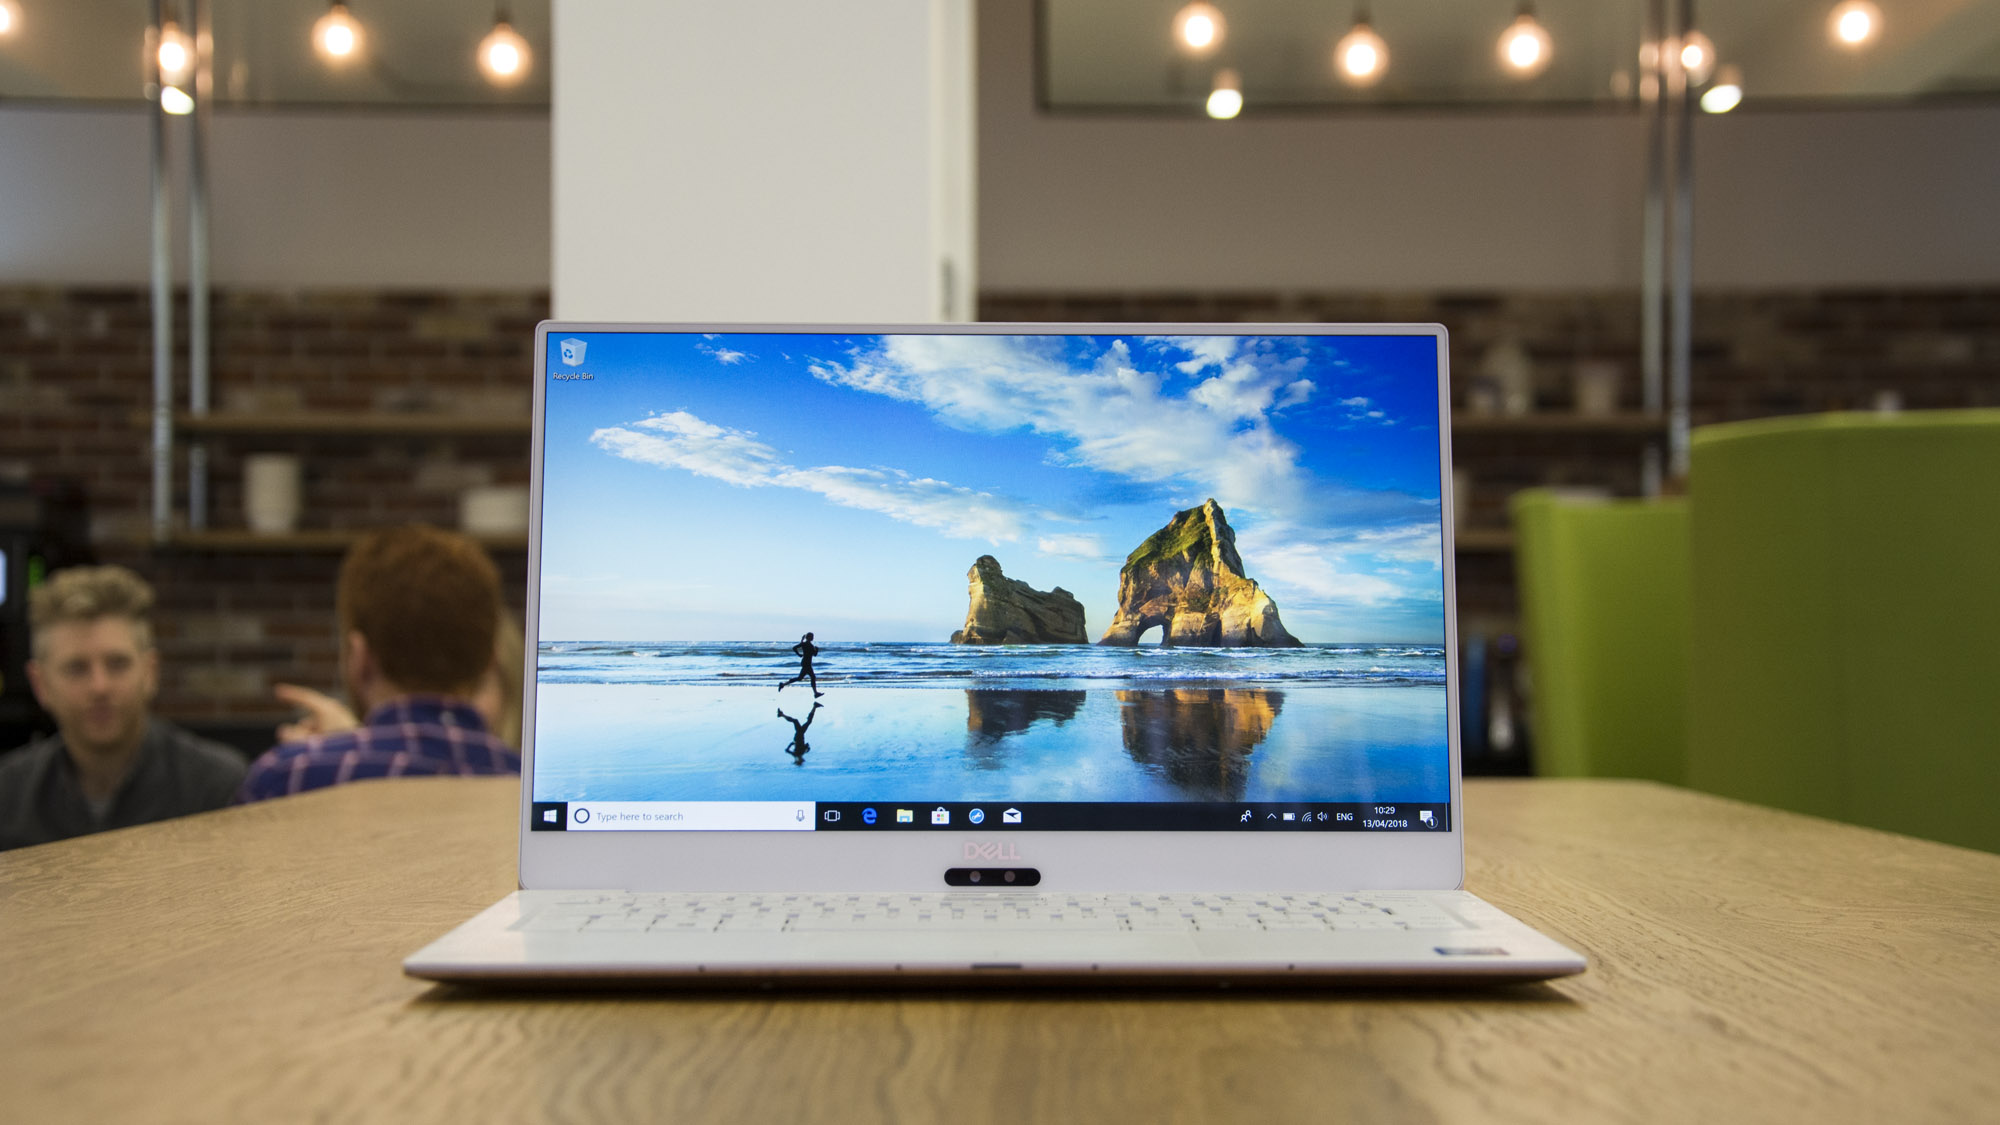 Dells XPS 13 Has Spent Several Years At The Top Of Our Wishlist And 2018s Rightly Reaffirms Its Place On Laptop Podium That Full HD InfinityEdge